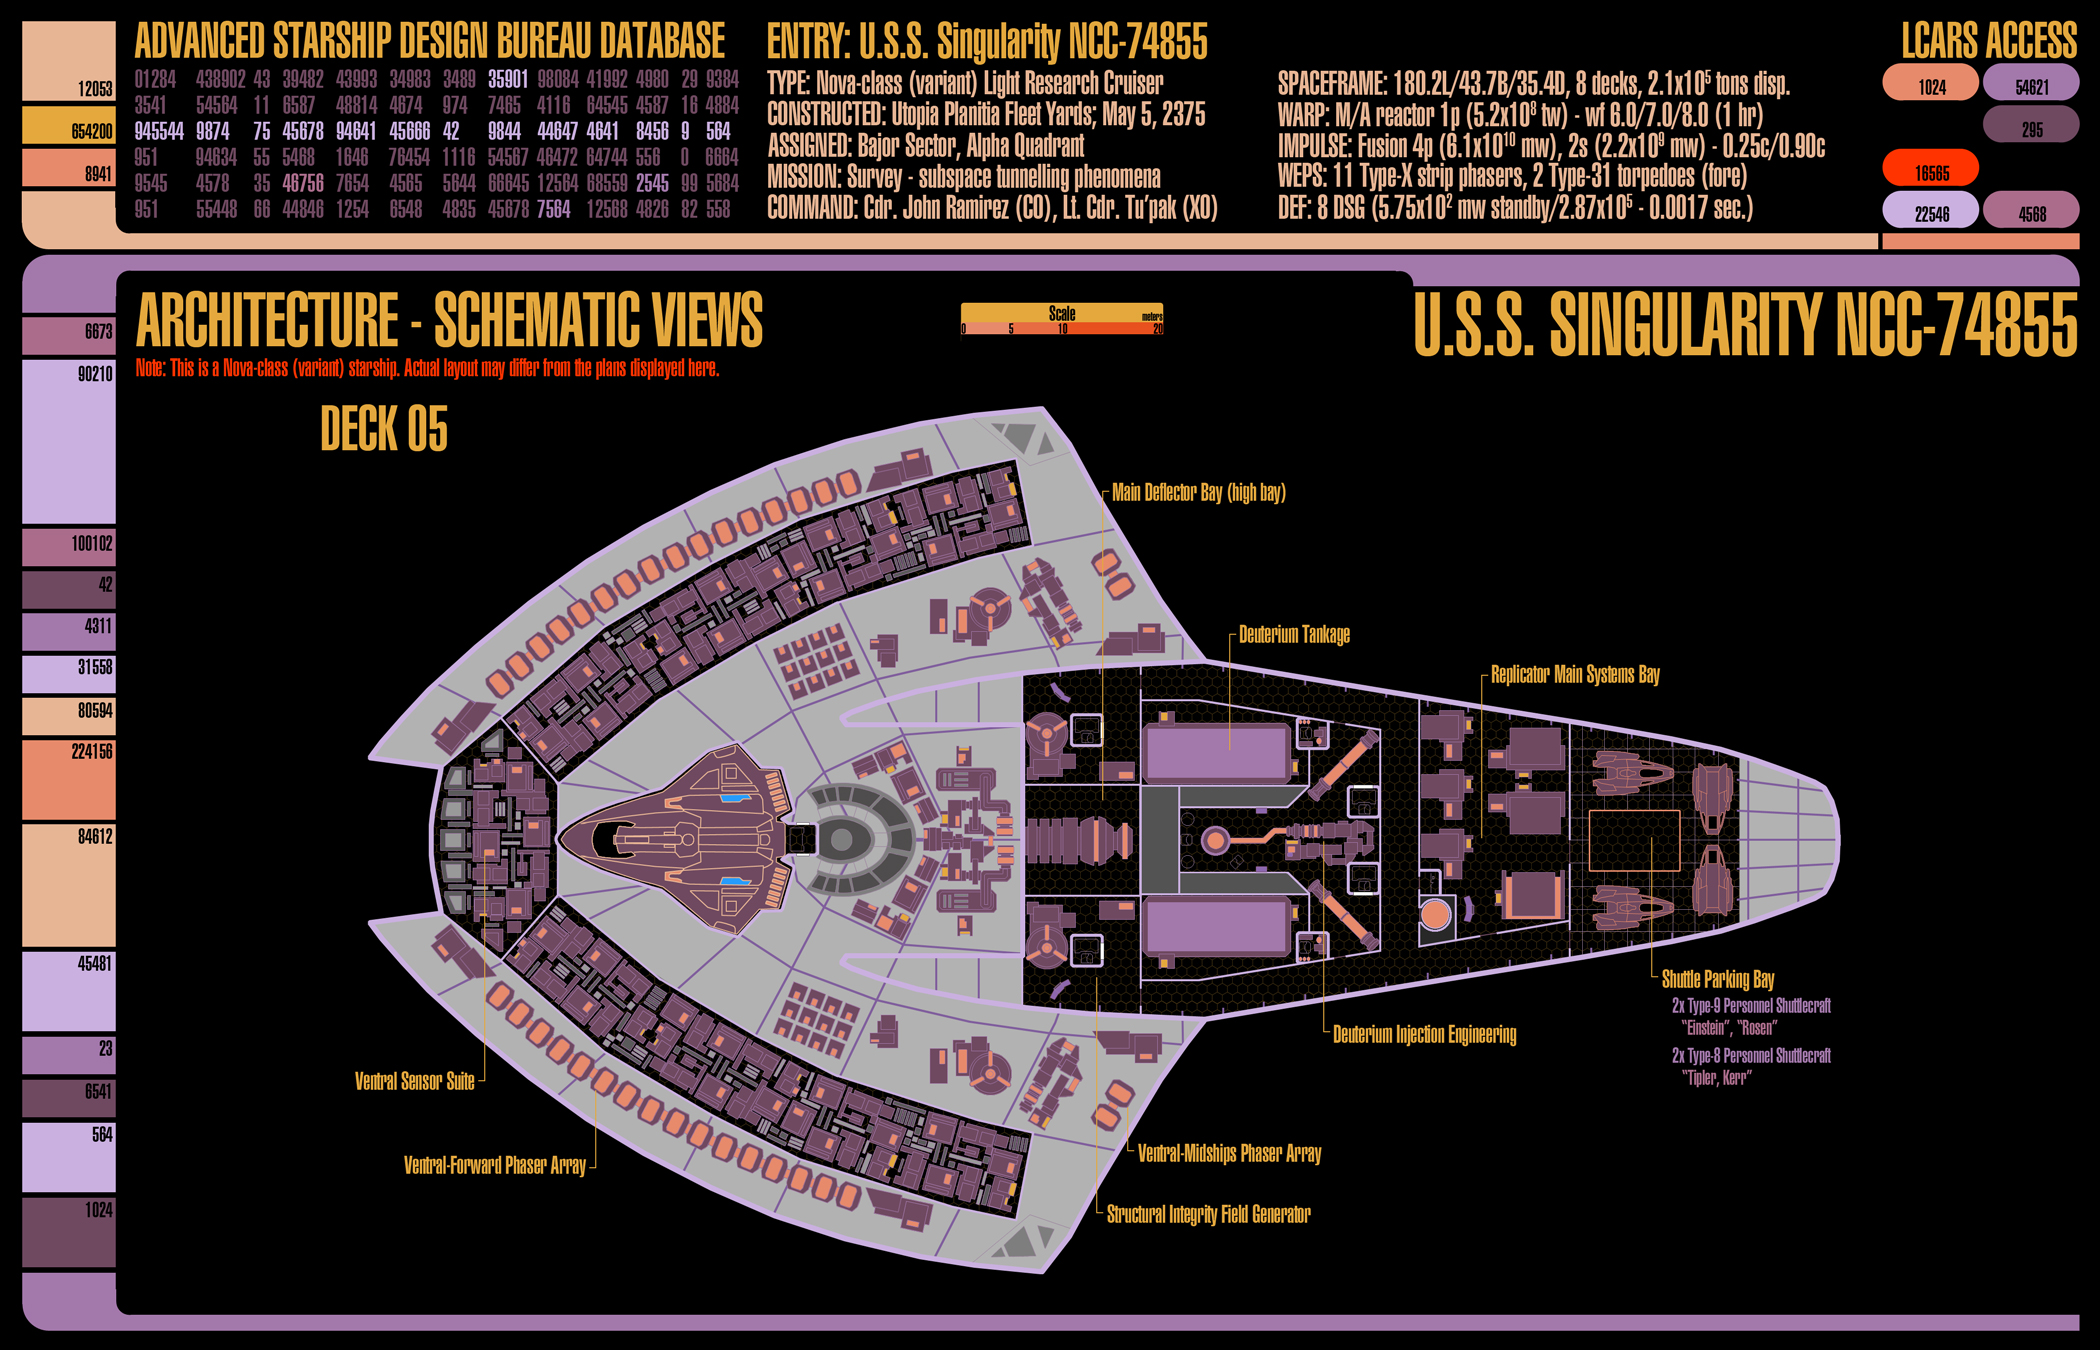 U.S.S. Singularity (NCC-74855) - deckplans for an upcoming Star Trek (TNG-era) game I'll be running using GURPS. This is deck 5.